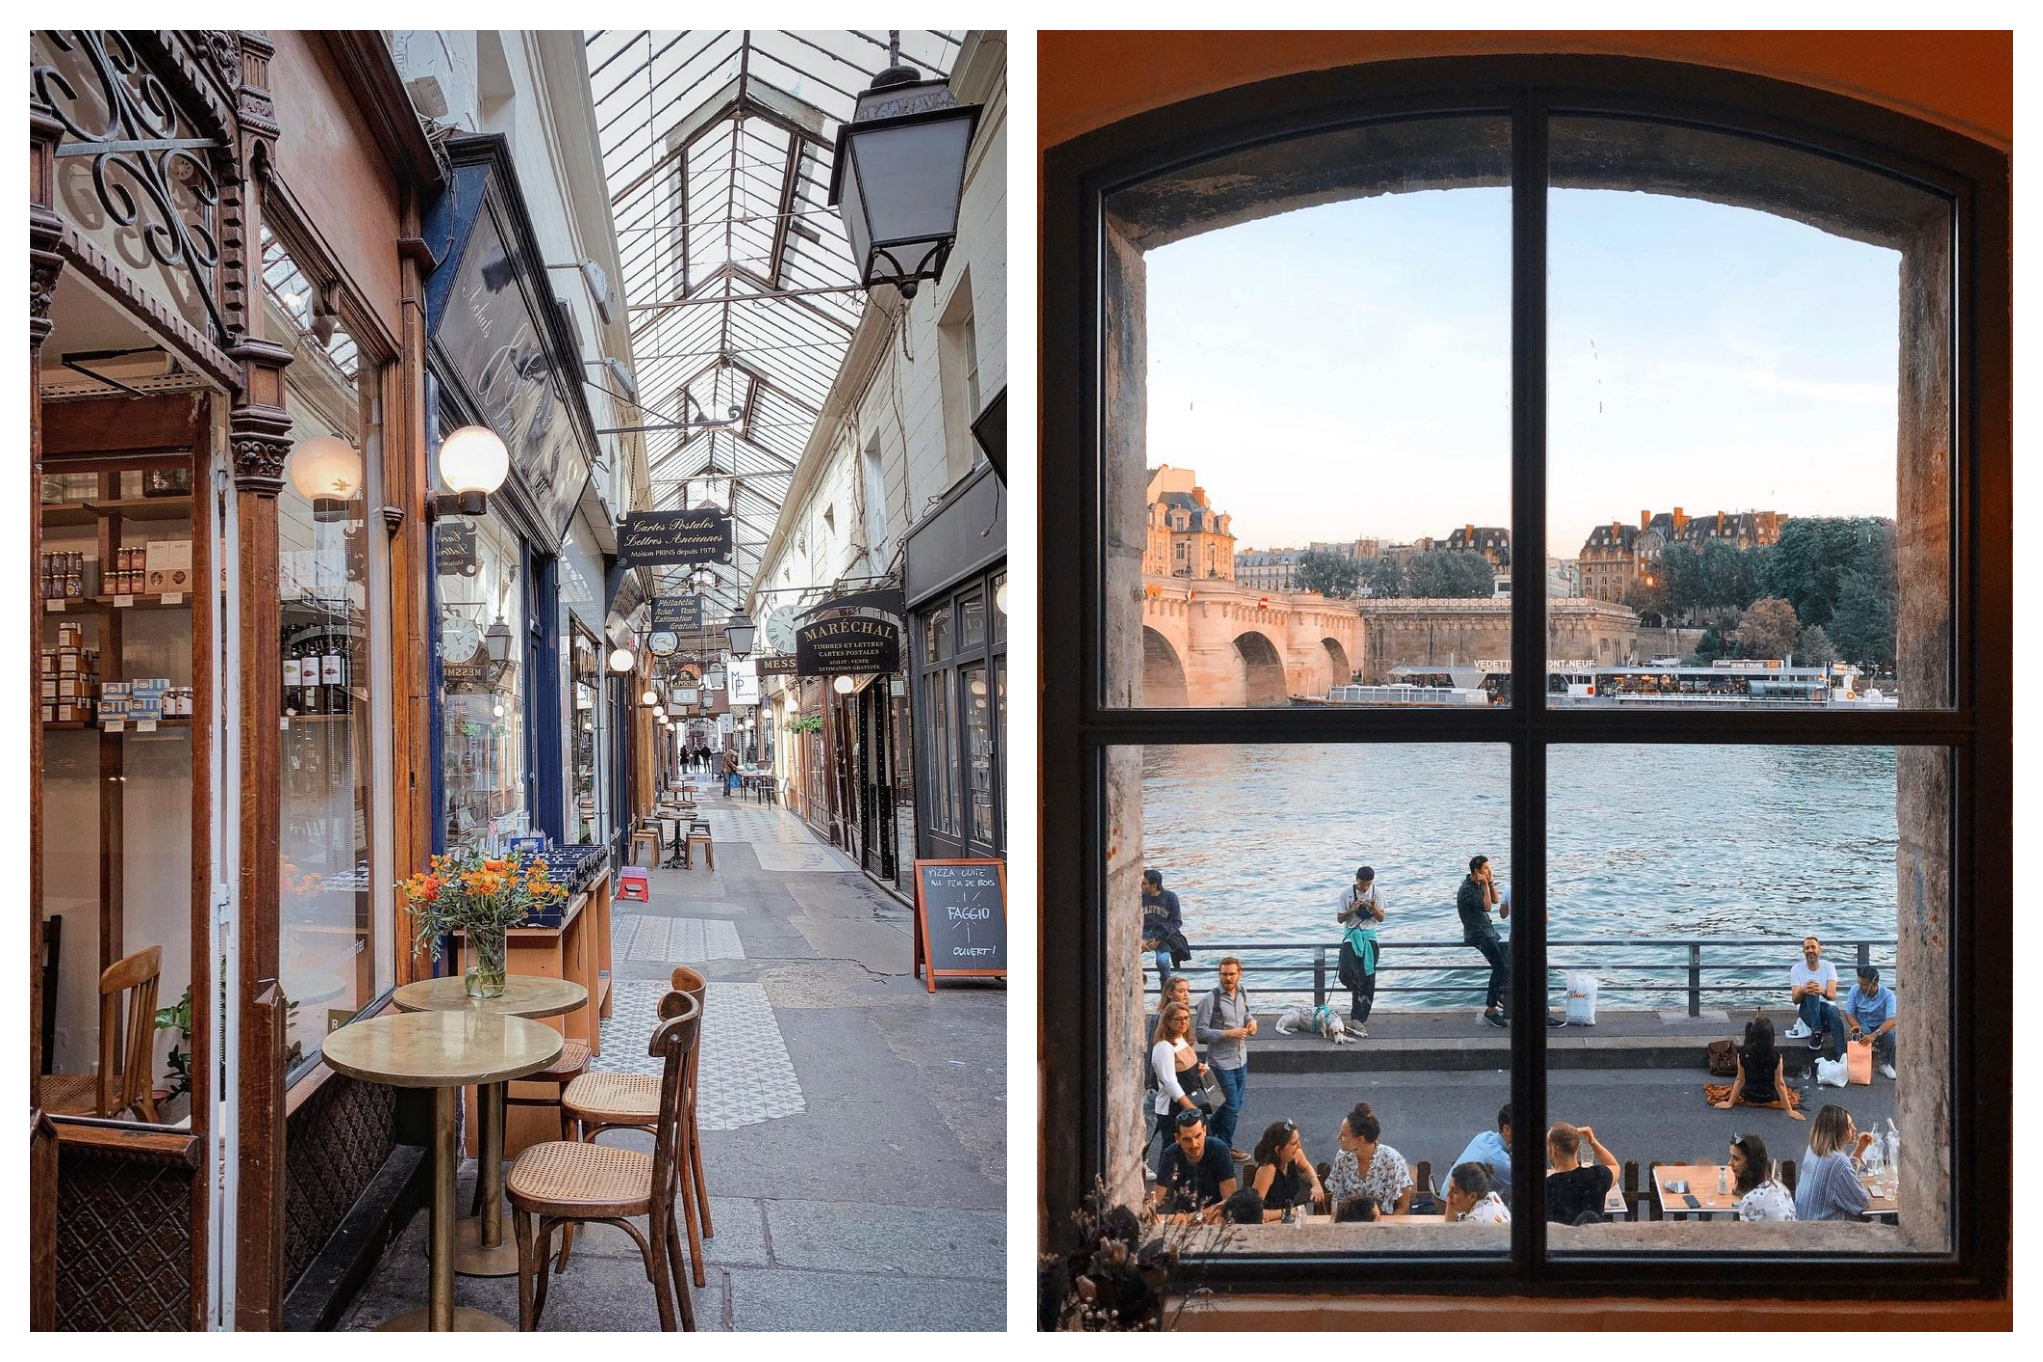 """Left: One of the oldest covered passages in Paris, the """"Passage des Panoramas"""". Right: A picture from the interiors of Maison Maison, a terrace by the Seine. In this photo, customers are seen in their terrace enjoying the view of the Seine and the Pont Neuf bridge."""